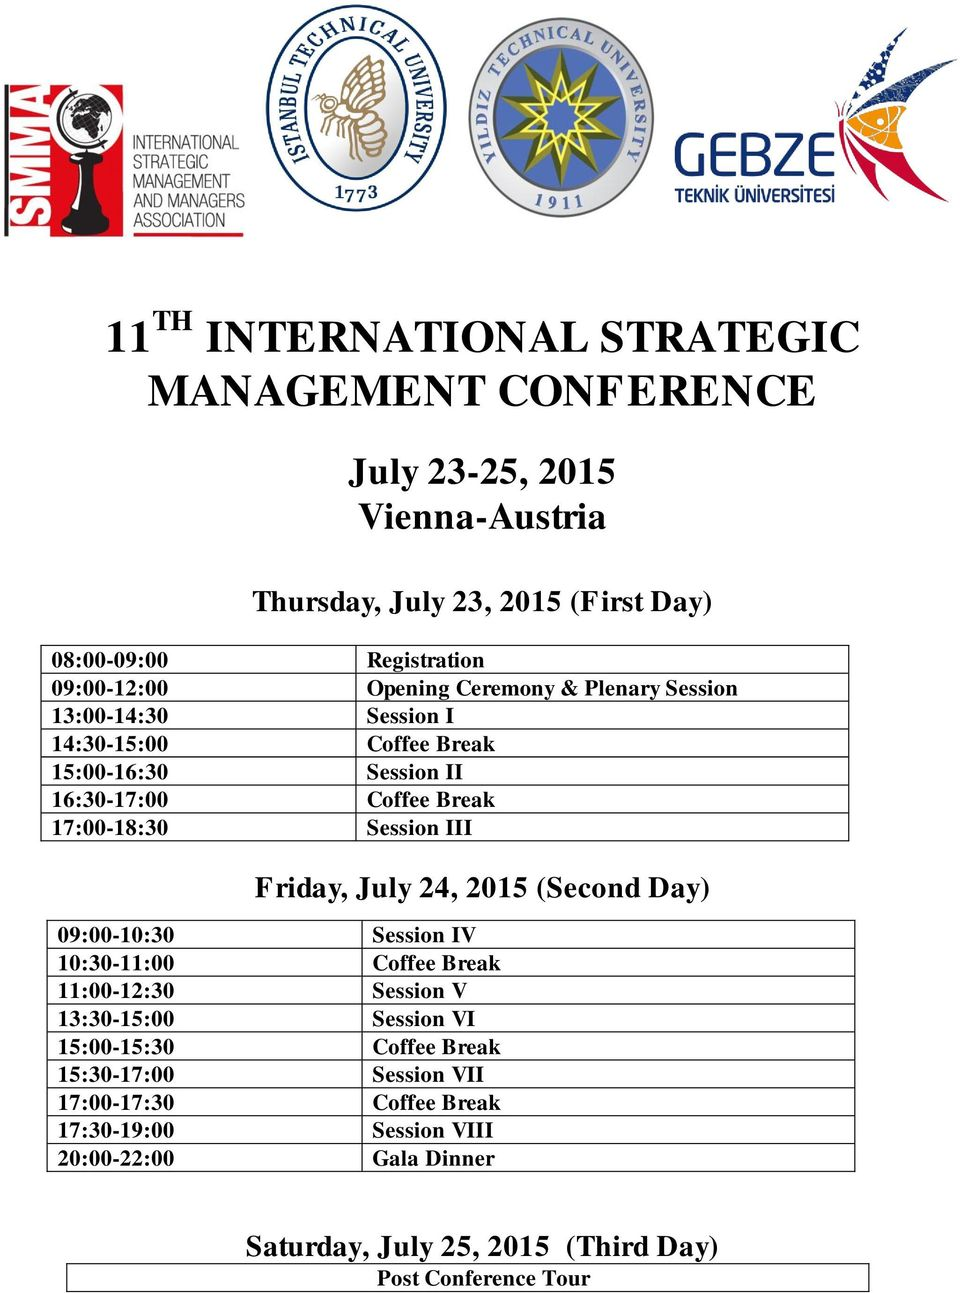 Session III Friday, July 24, 2015 (Second Day) 09:00-10:30 Session IV 10:30-11:00 Coffee Break 11:00-12:30 Session V 13:30-15:00 Session VI 15:00-15:30